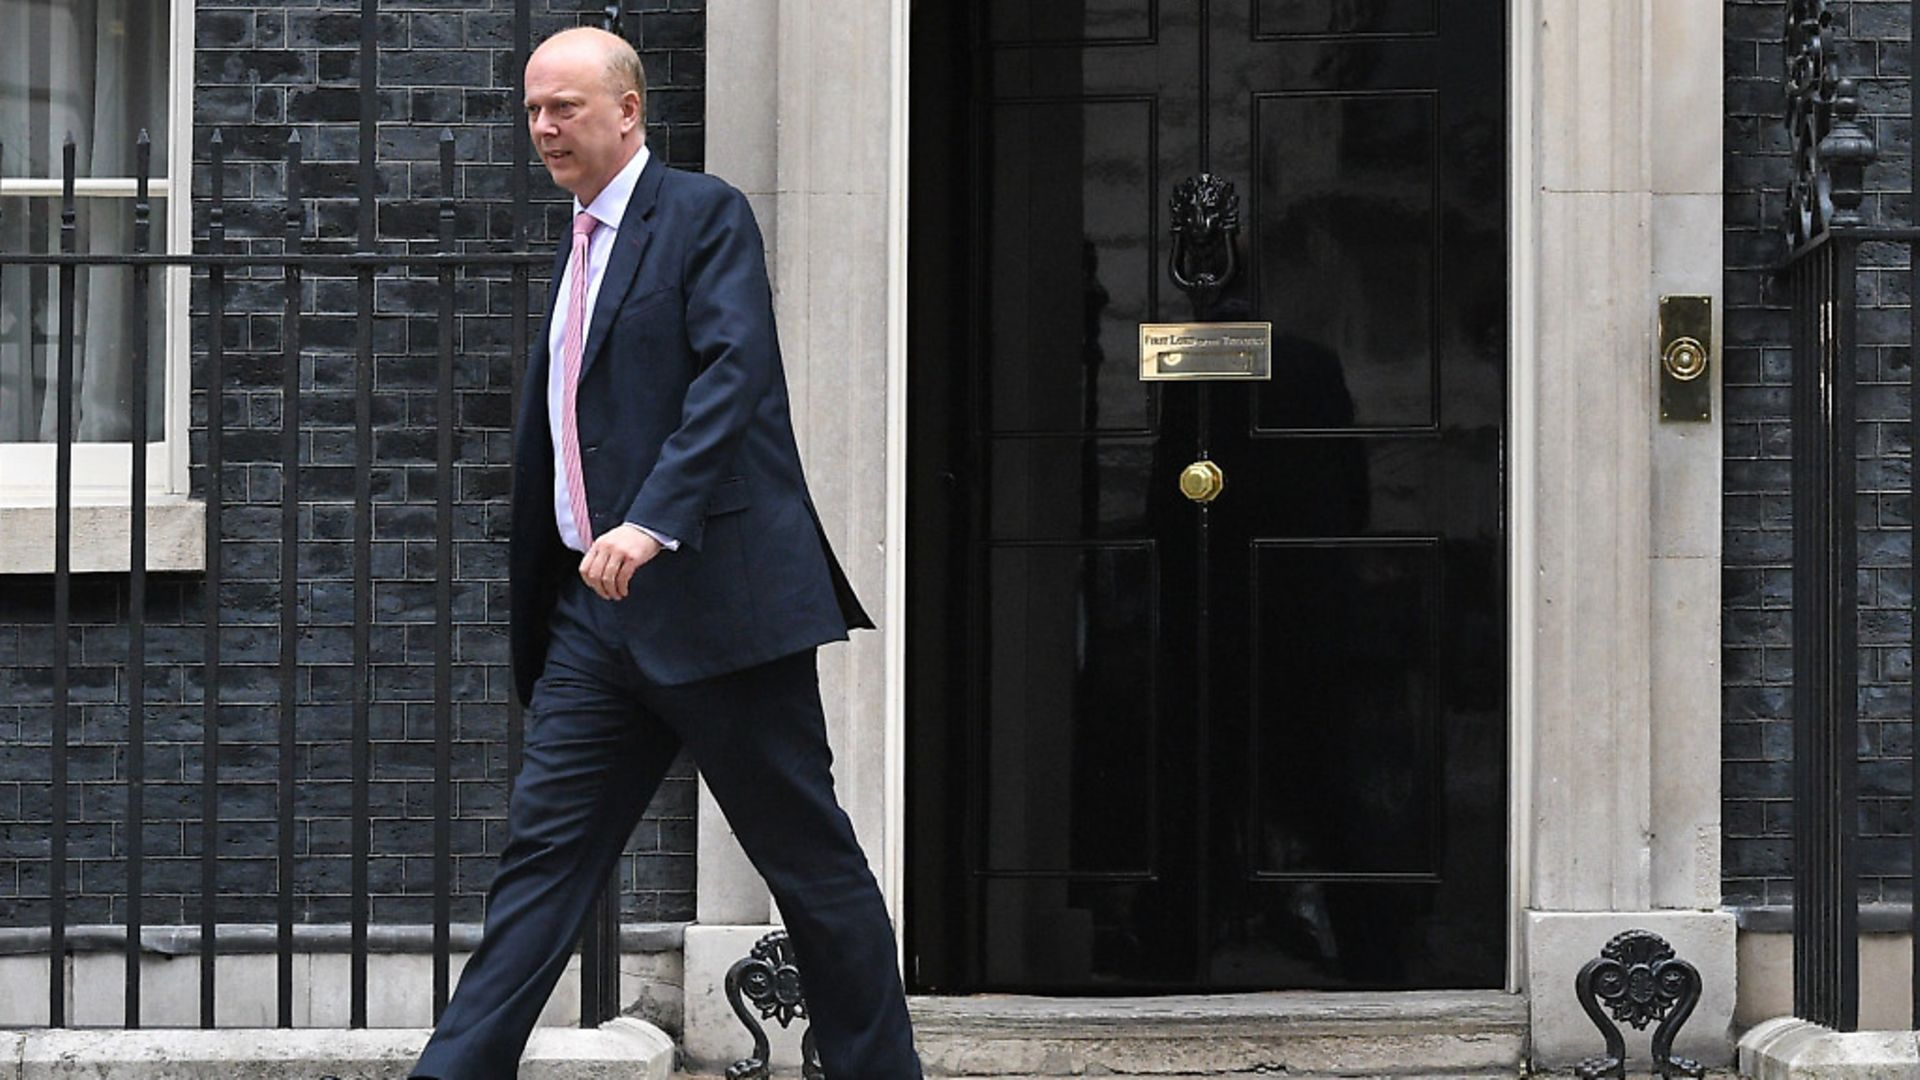 Chris Grayling MP. (Picture: Leon Neal/Getty Images - Credit: Getty Images